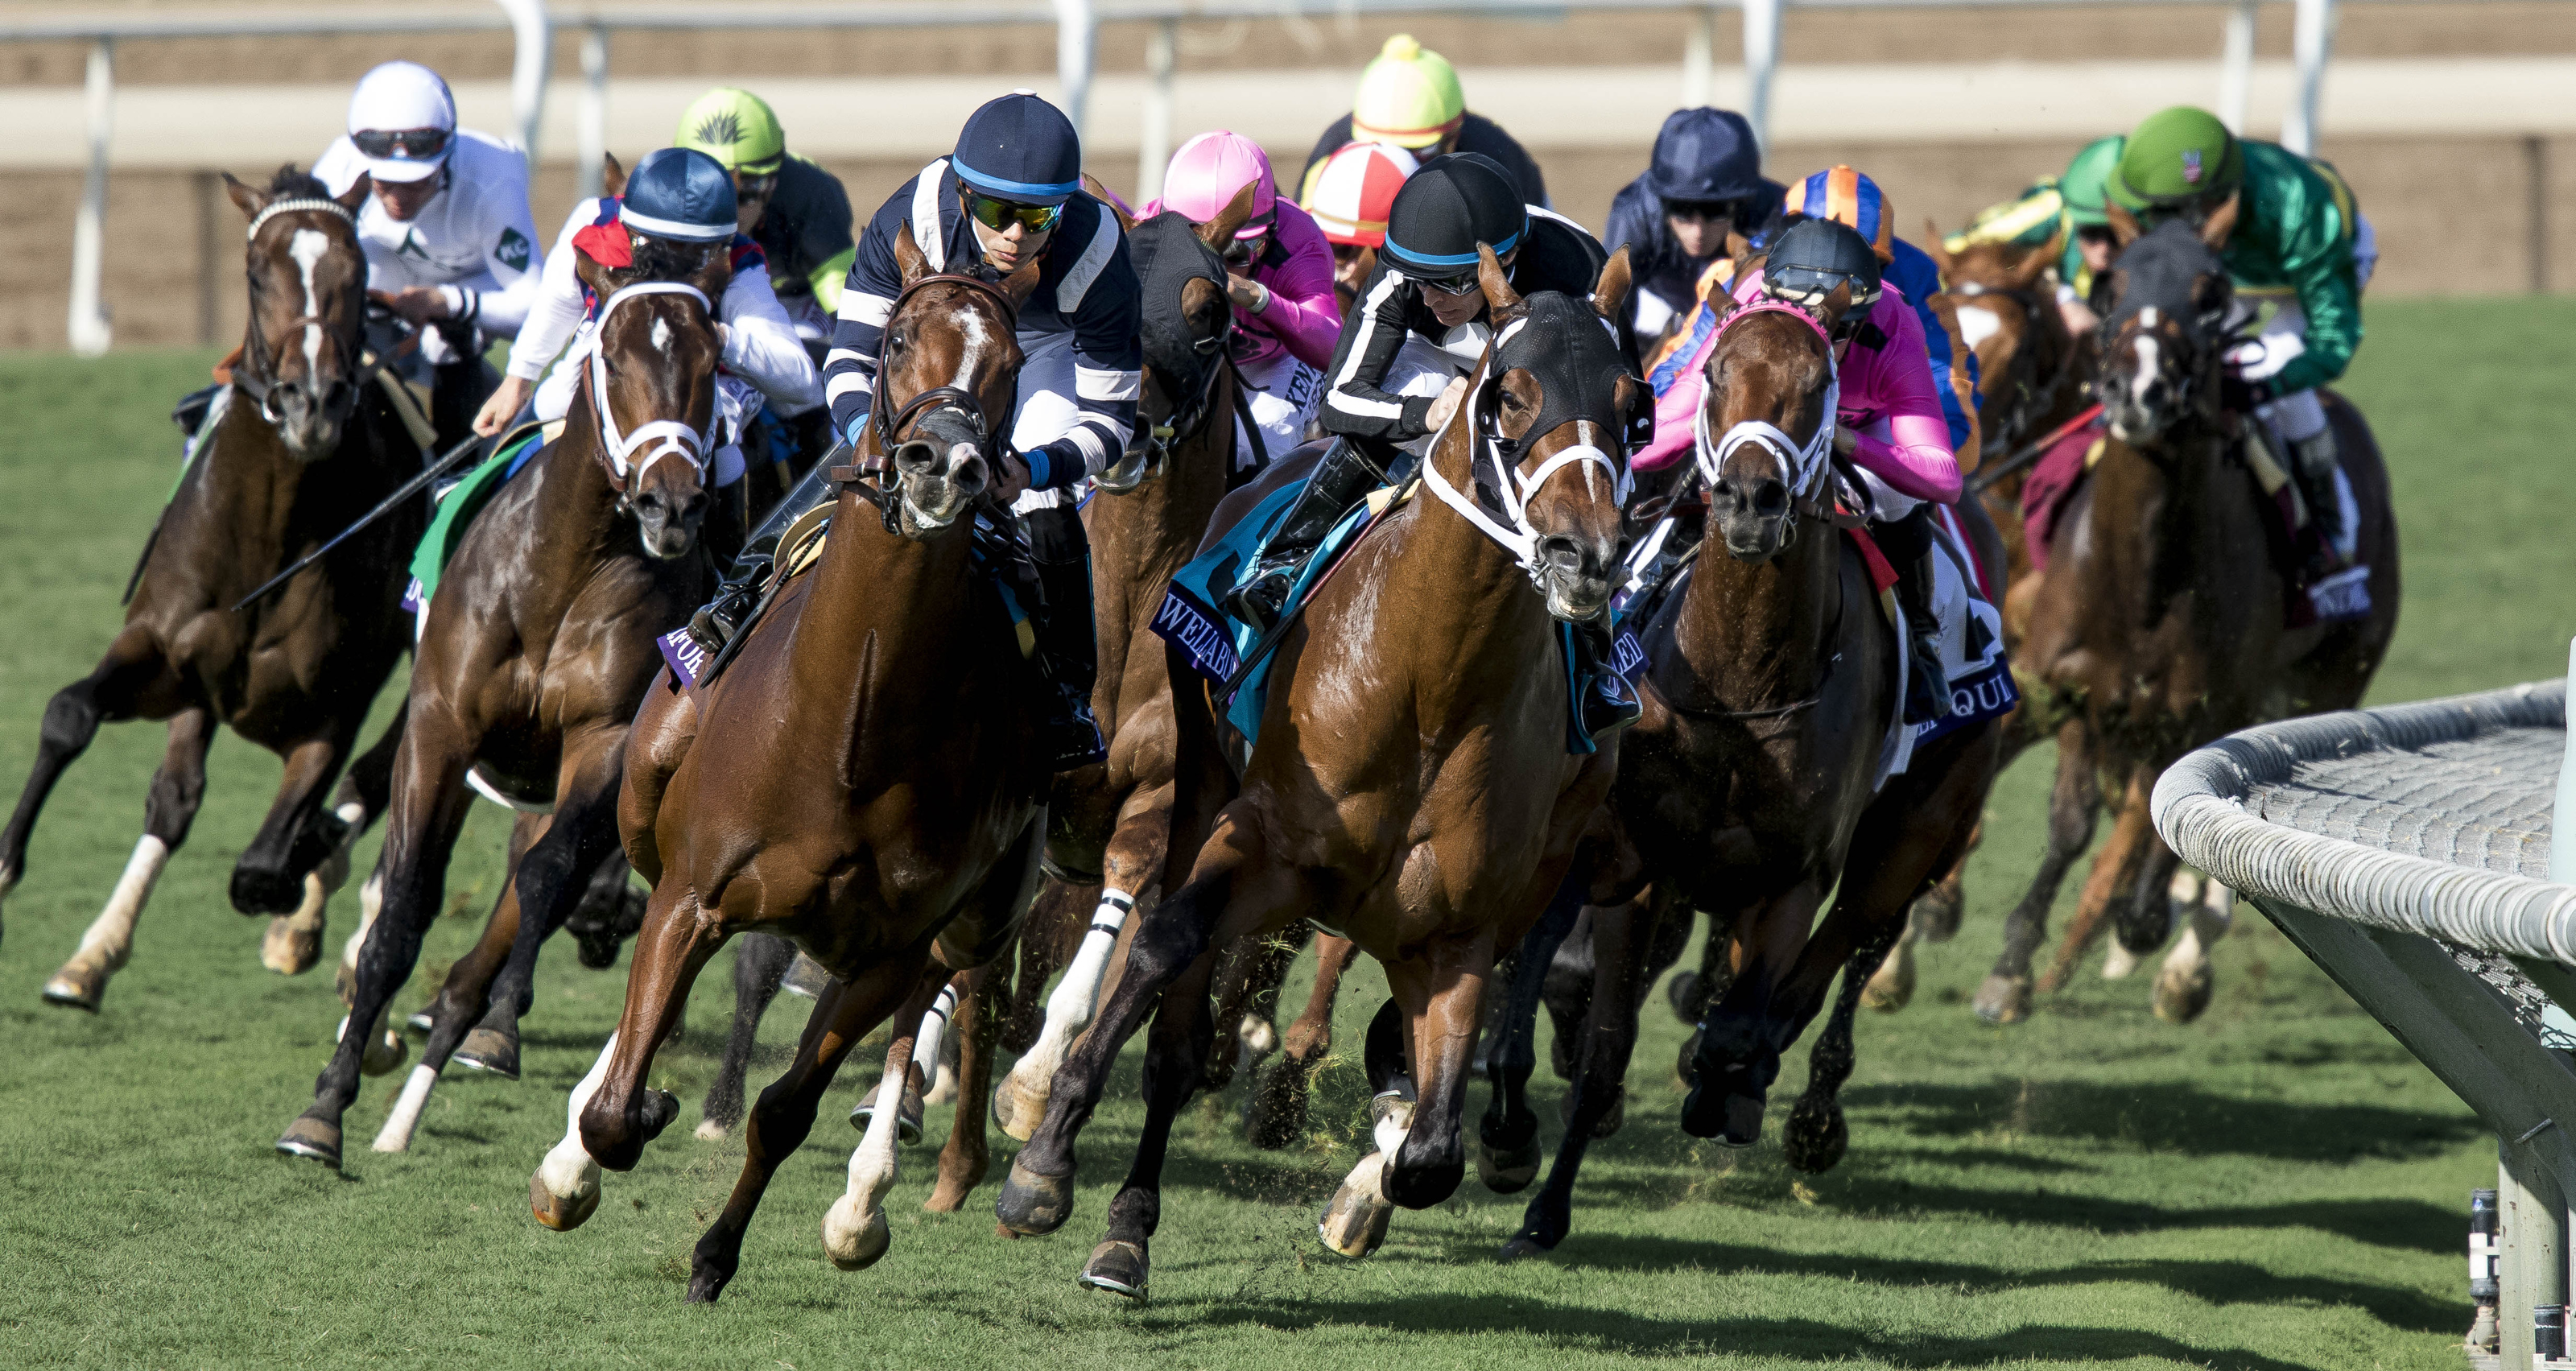 Breeders Cup Juvenile Turf Oscar Performance 8